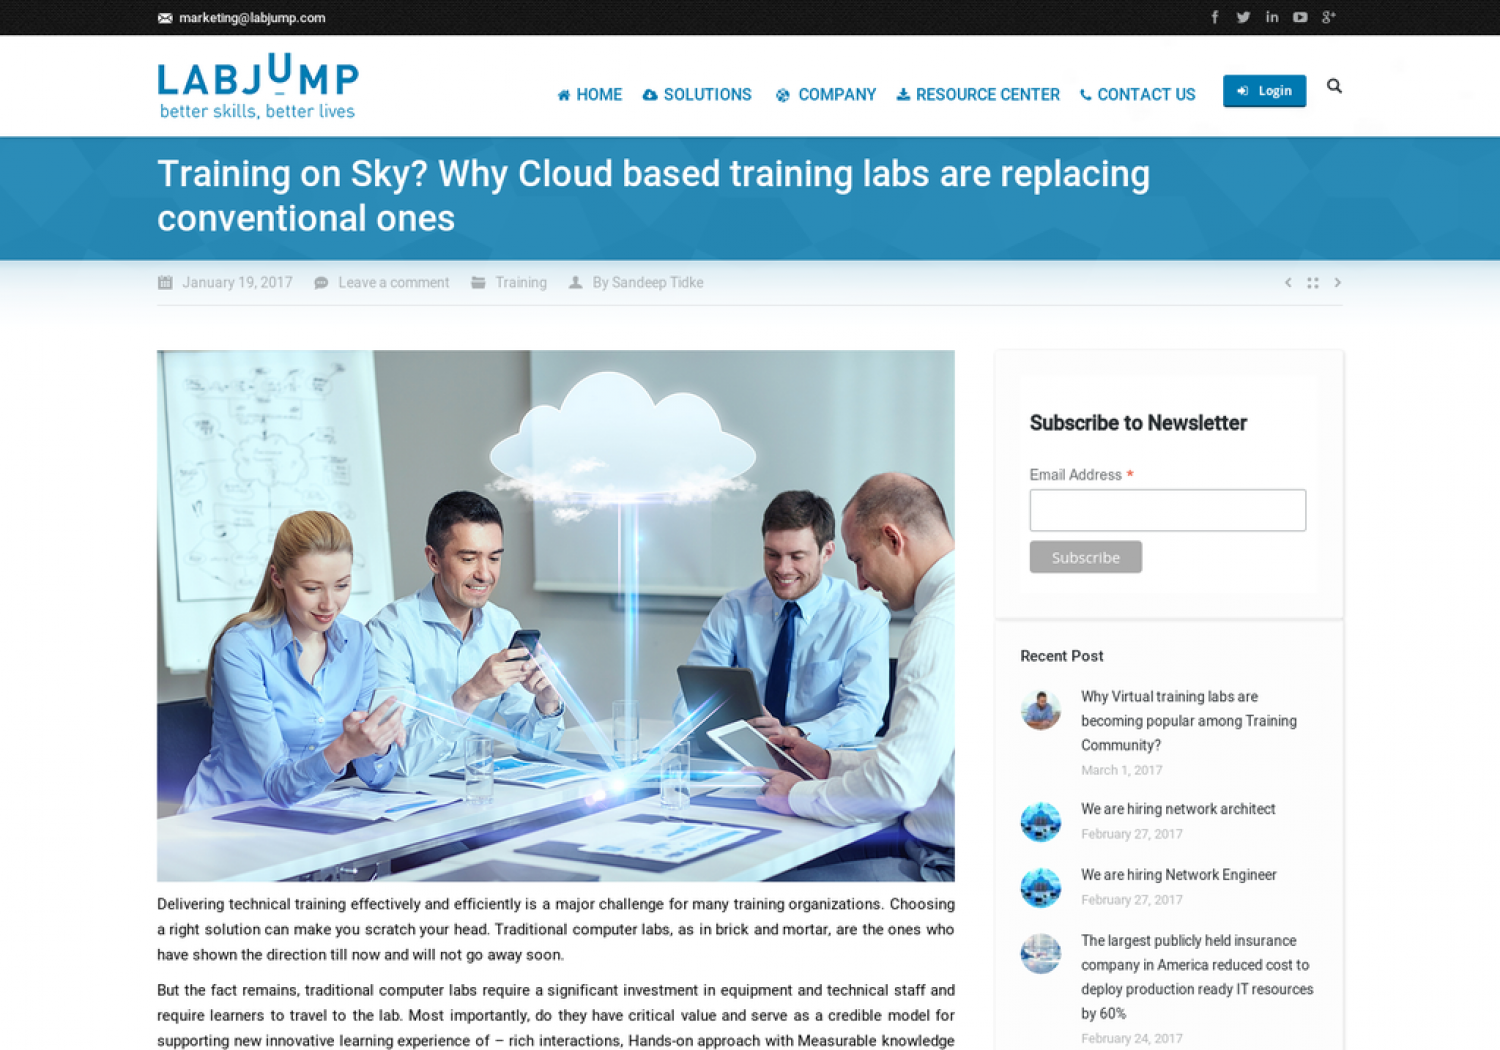 Training on Sky? Why Cloud based training labs are replacing conventional ones Infographic